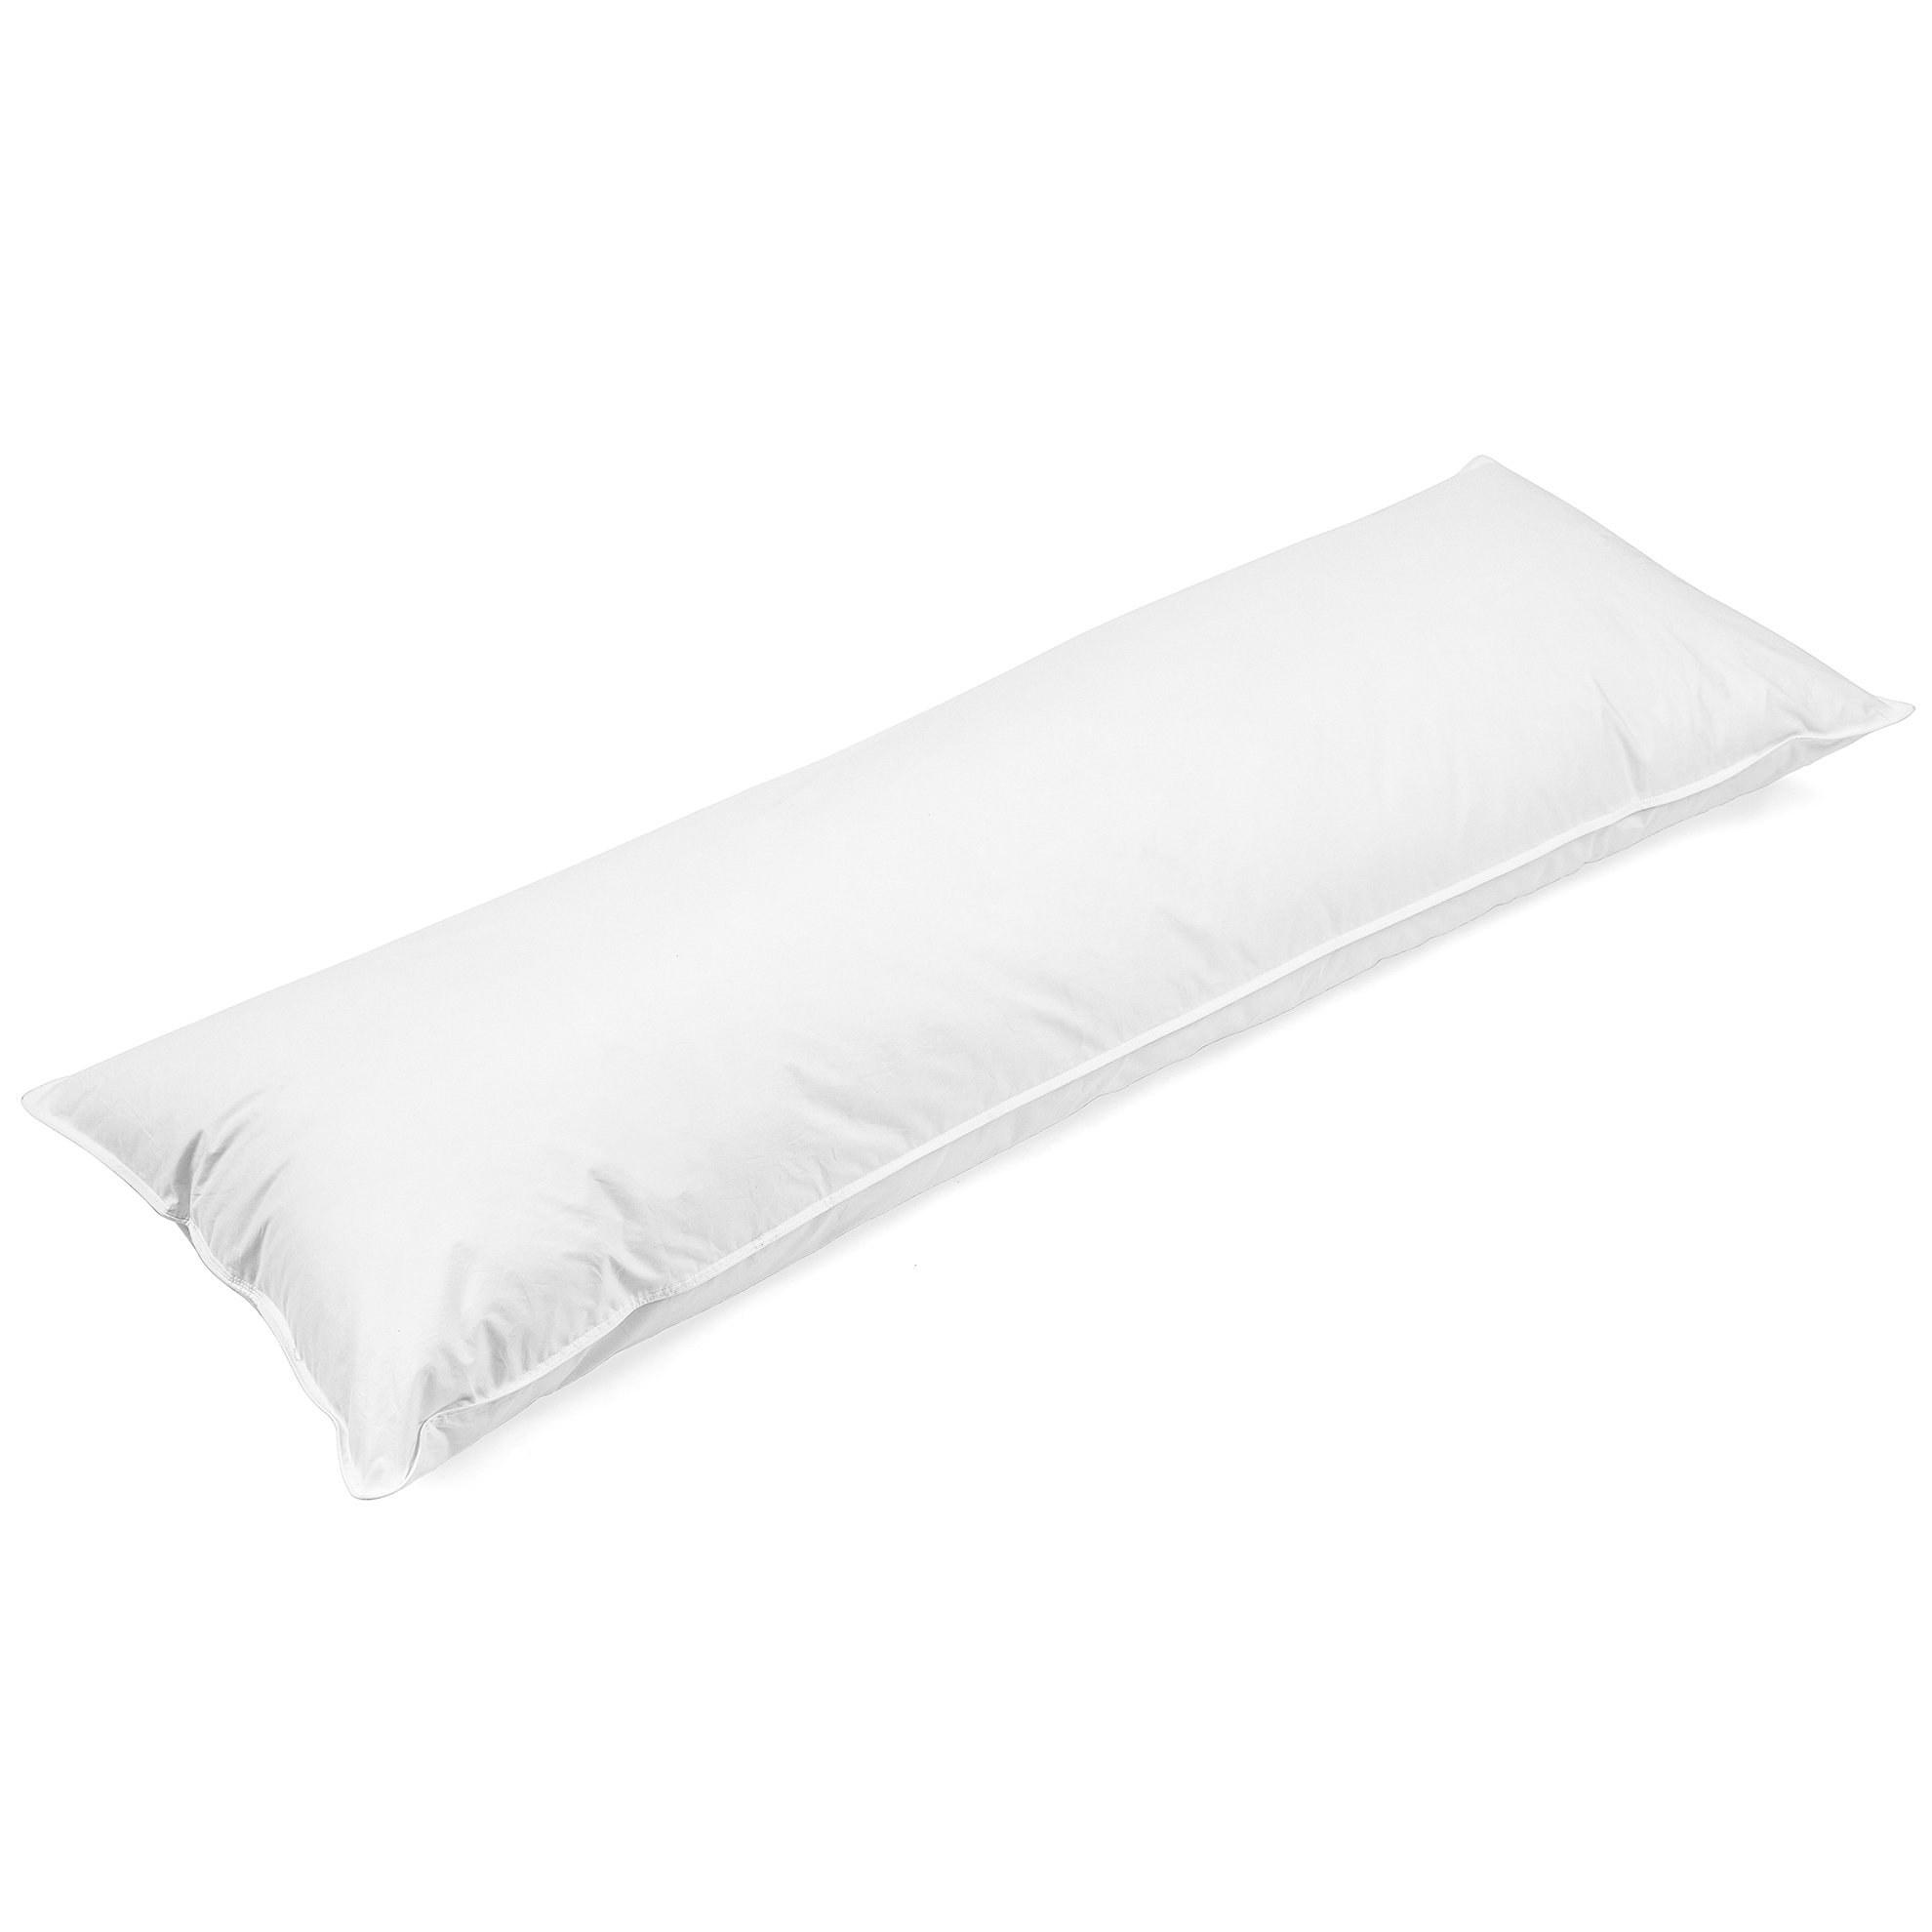 SweetBed Body Pillow 230TC Cotton Cover Hypoallergenic Ultra Soft Long Pillows for Adults 20 x 54 inch